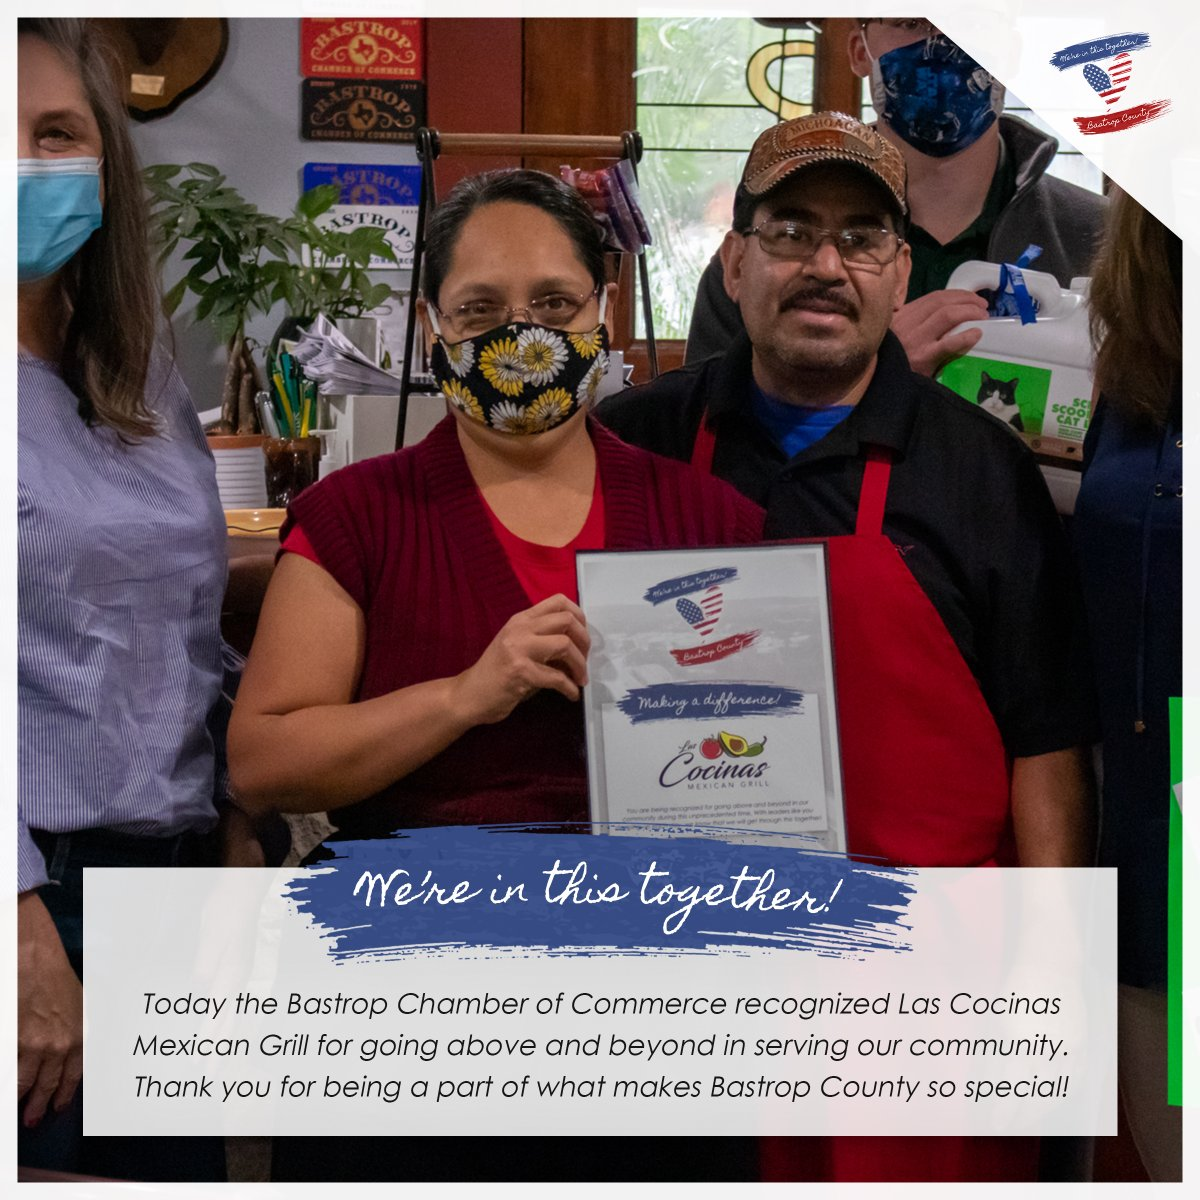 Today we recognized Las Cocinas for going above and beyond in serving our community. All through this pandemic they have continued to work hard and follow the CDC guidelines and continued to support the nonprofit charity, Bastrop County Animal Shelter Helpers.